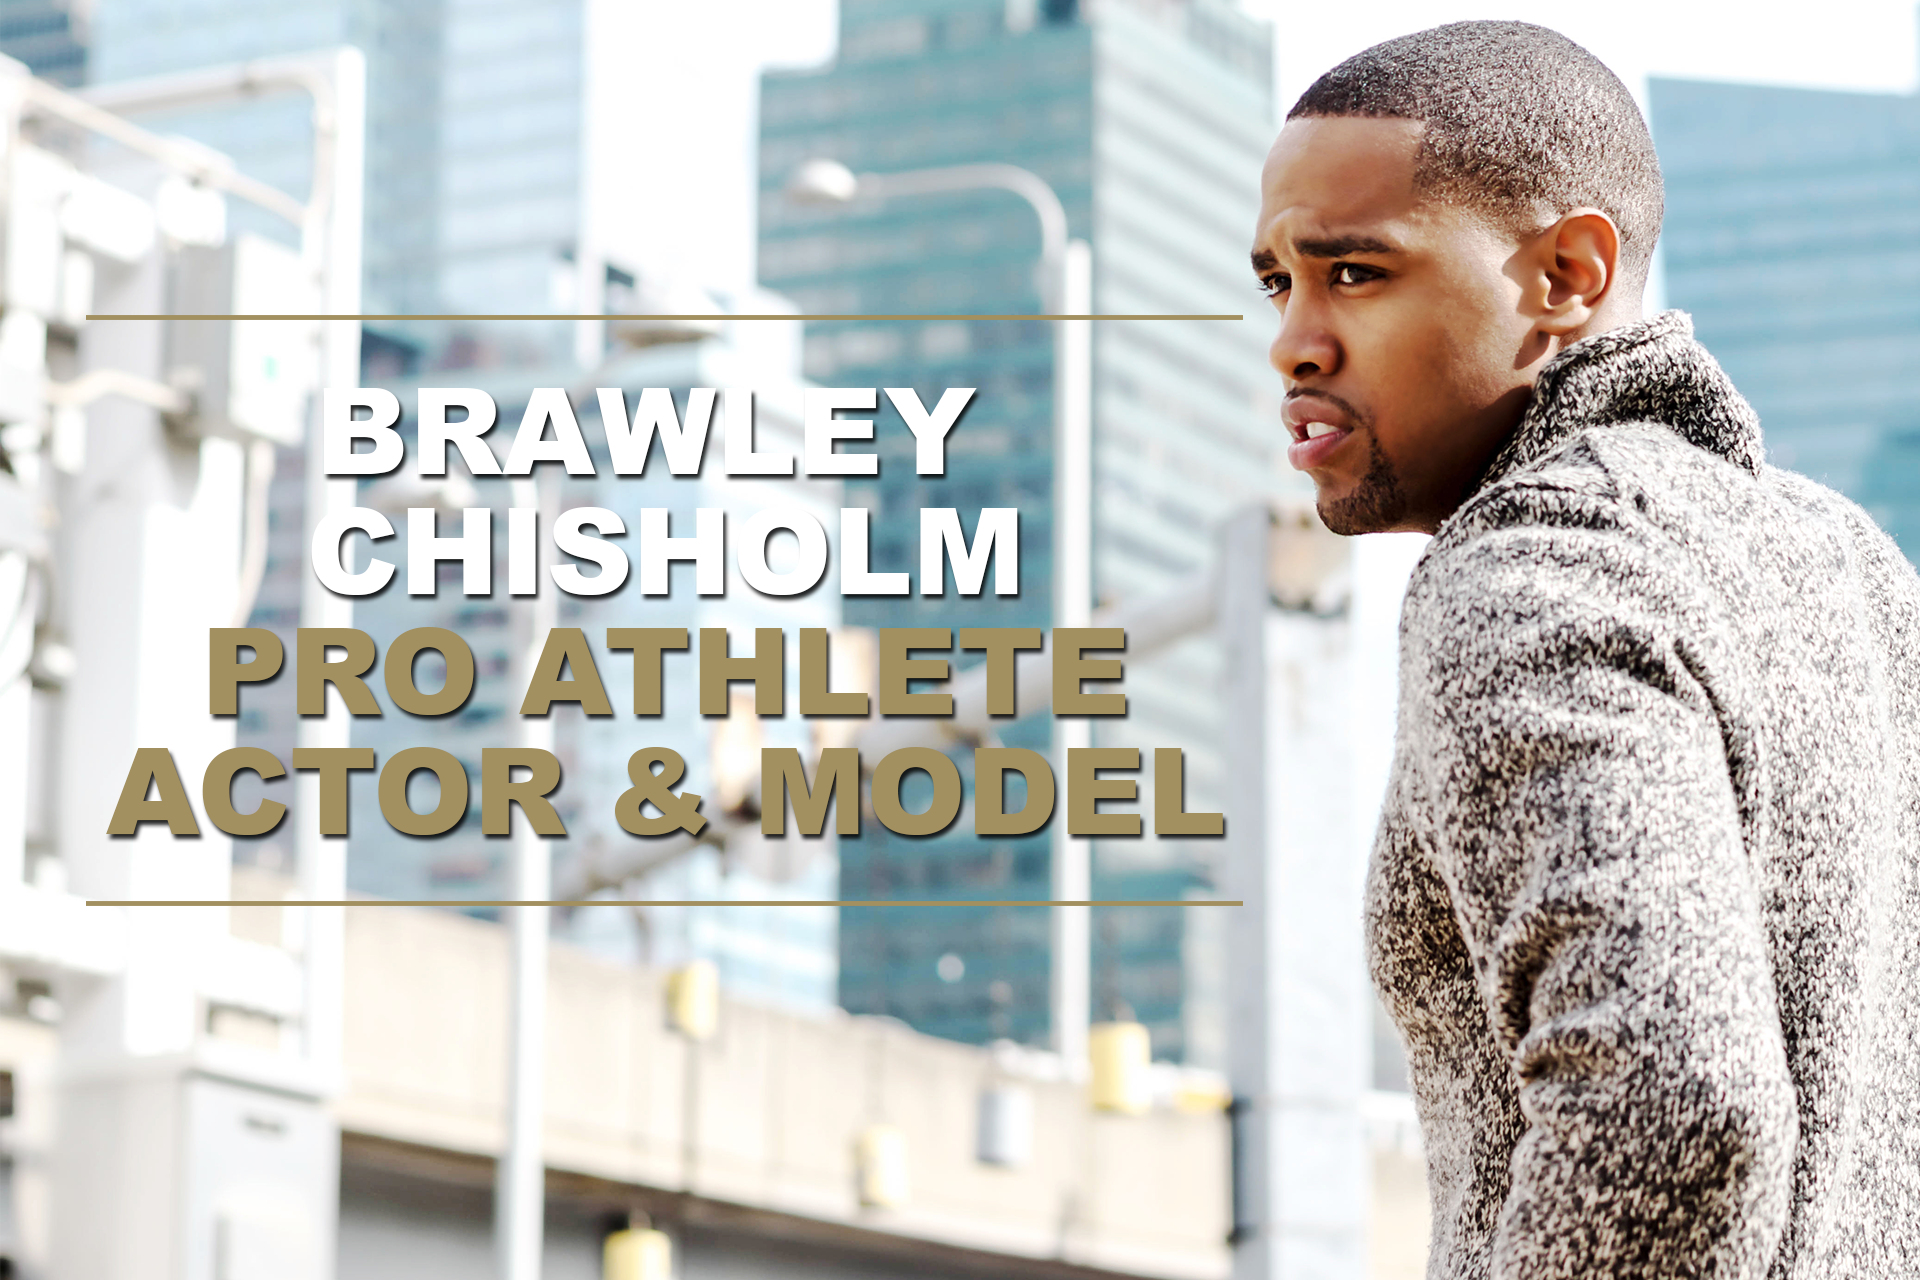 Brawley Chisholm: Pro Athlete | Actor | Model